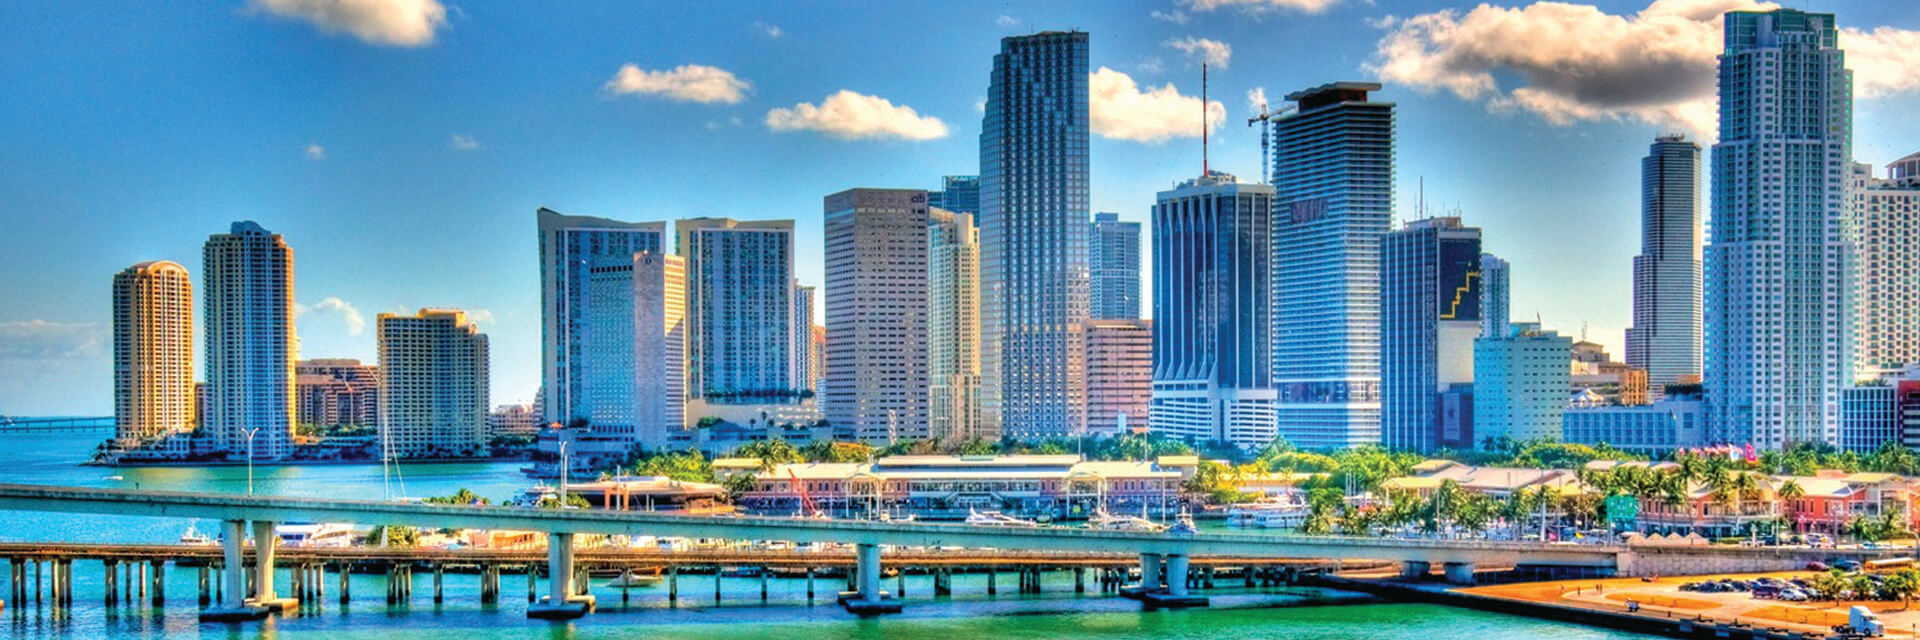 Book A Miami Day Trip From Orlando Floridatix